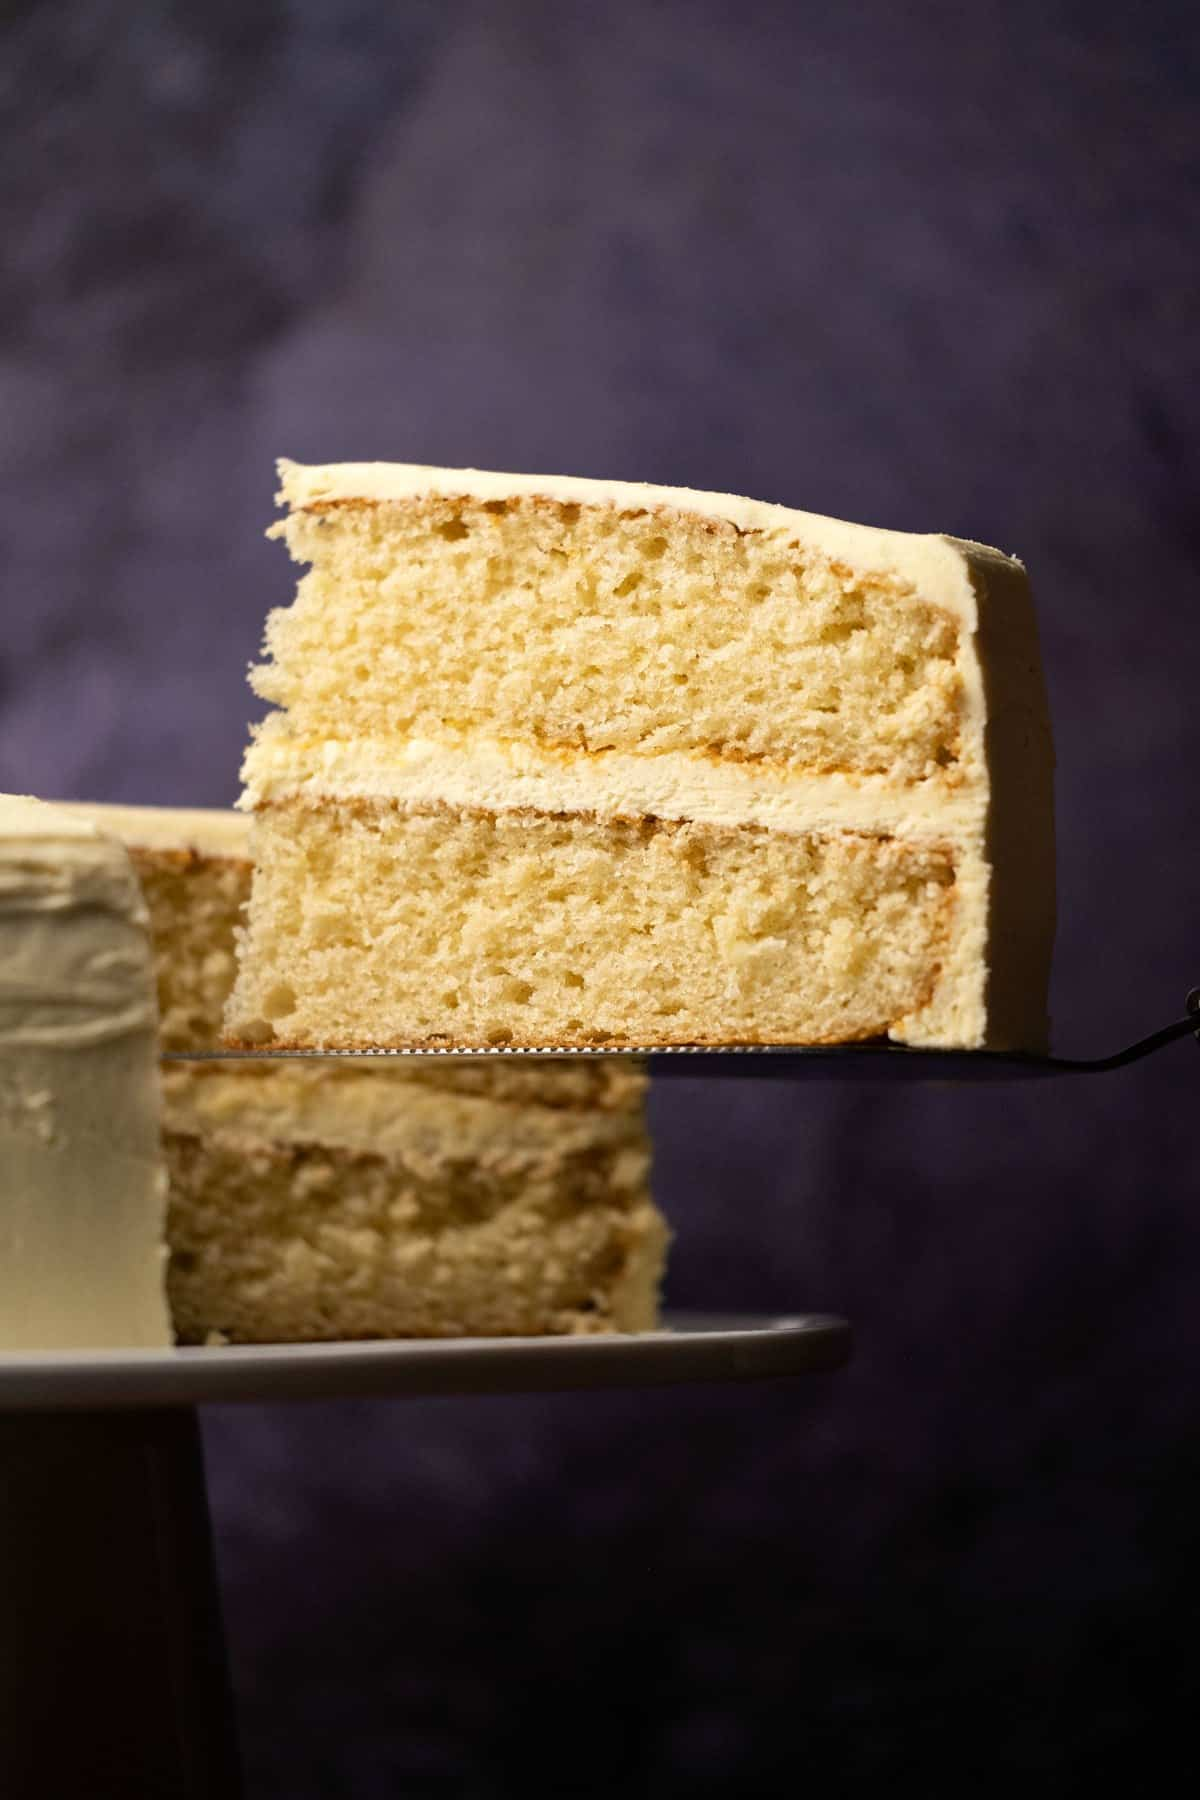 Slice of vanilla cake on a cake lifter.